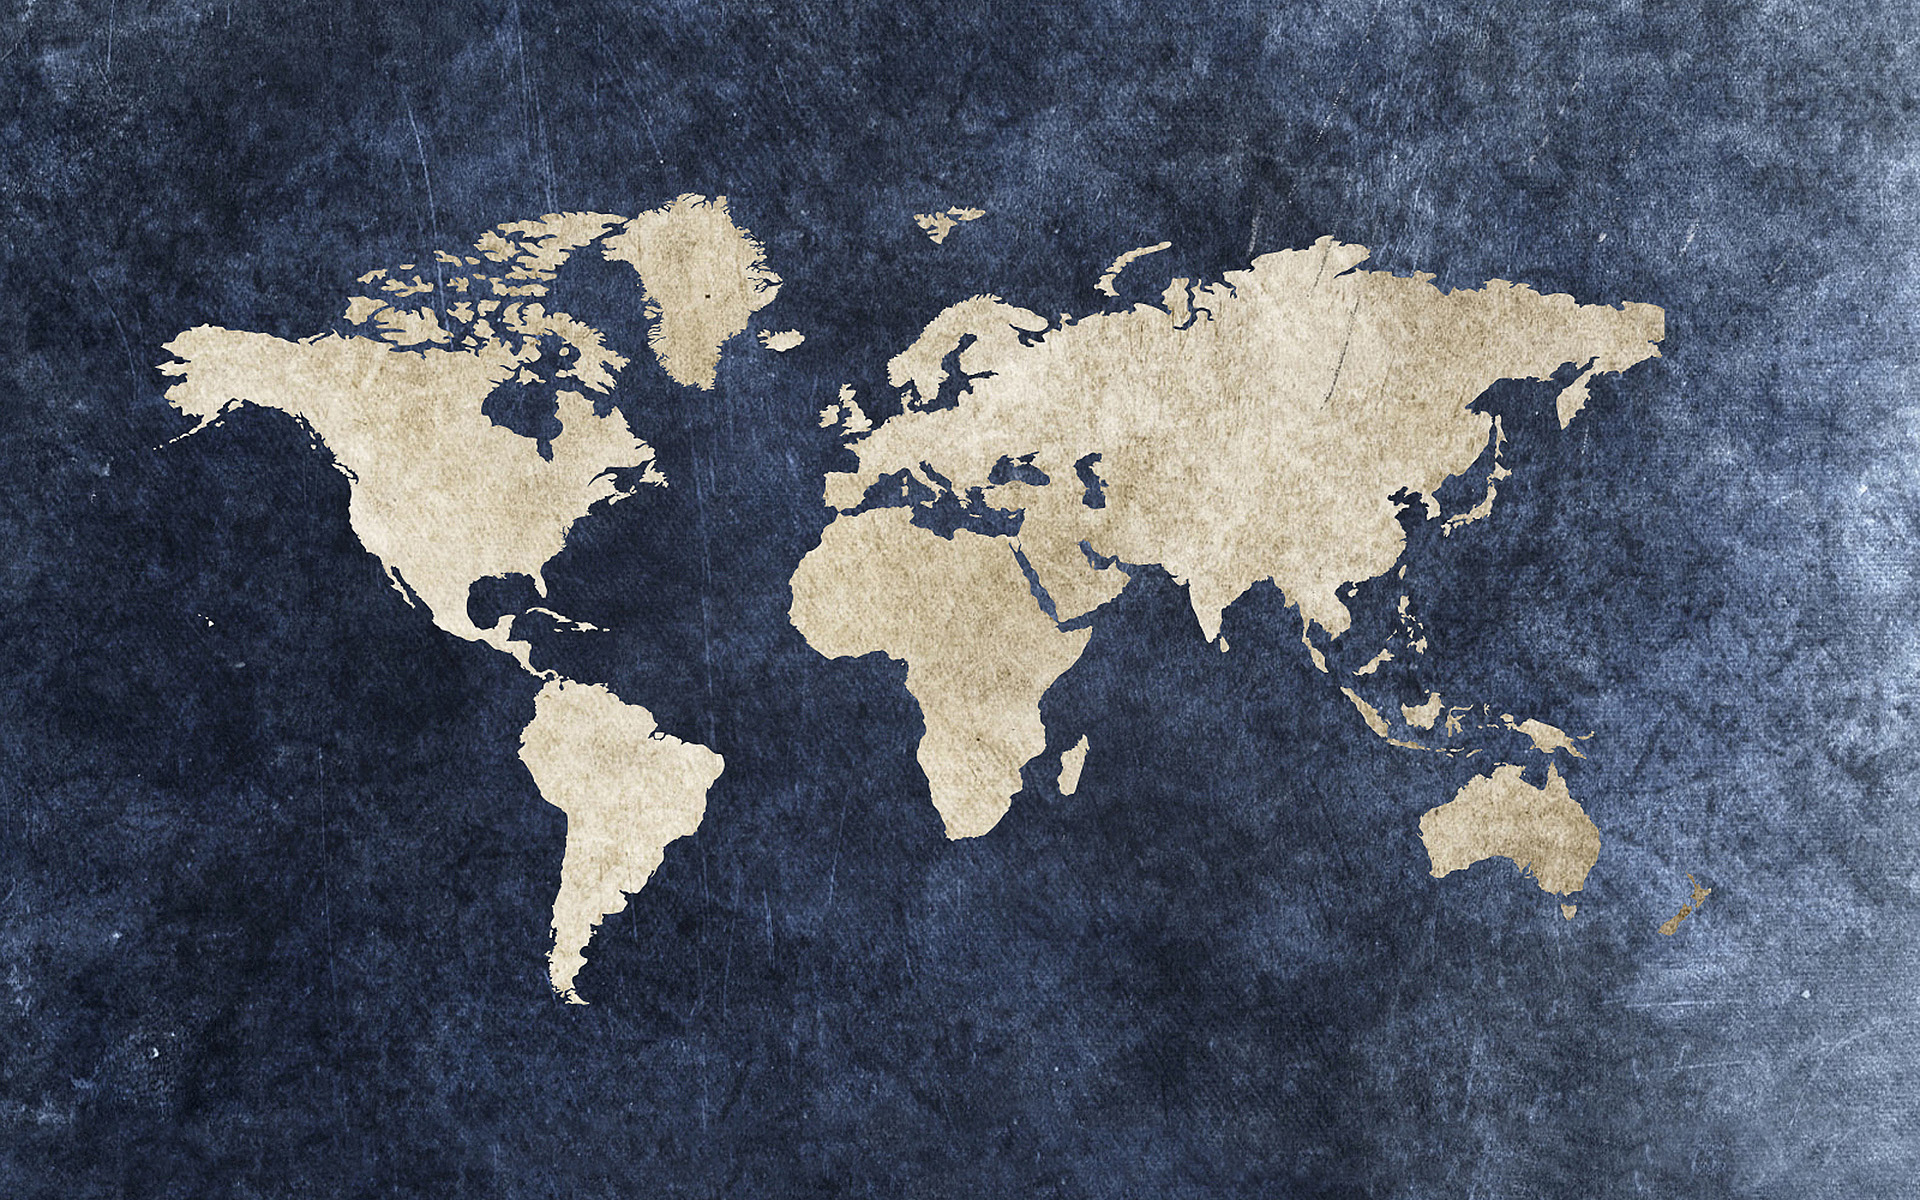 Grunge World Map Wallpaper 1920x1200 10629